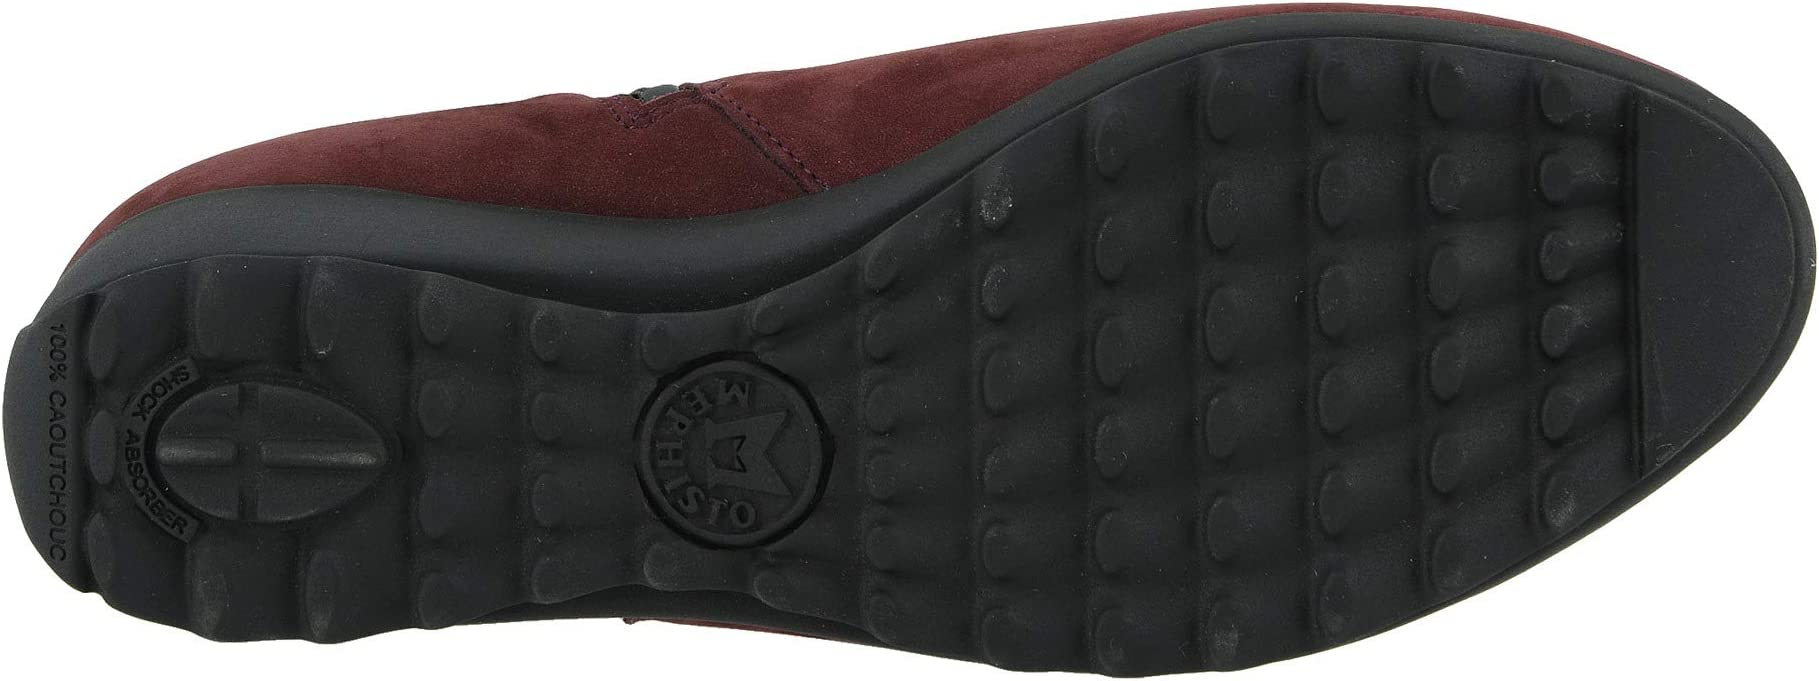 Mephisto Agatha | Women's shoes | 2020 Newest